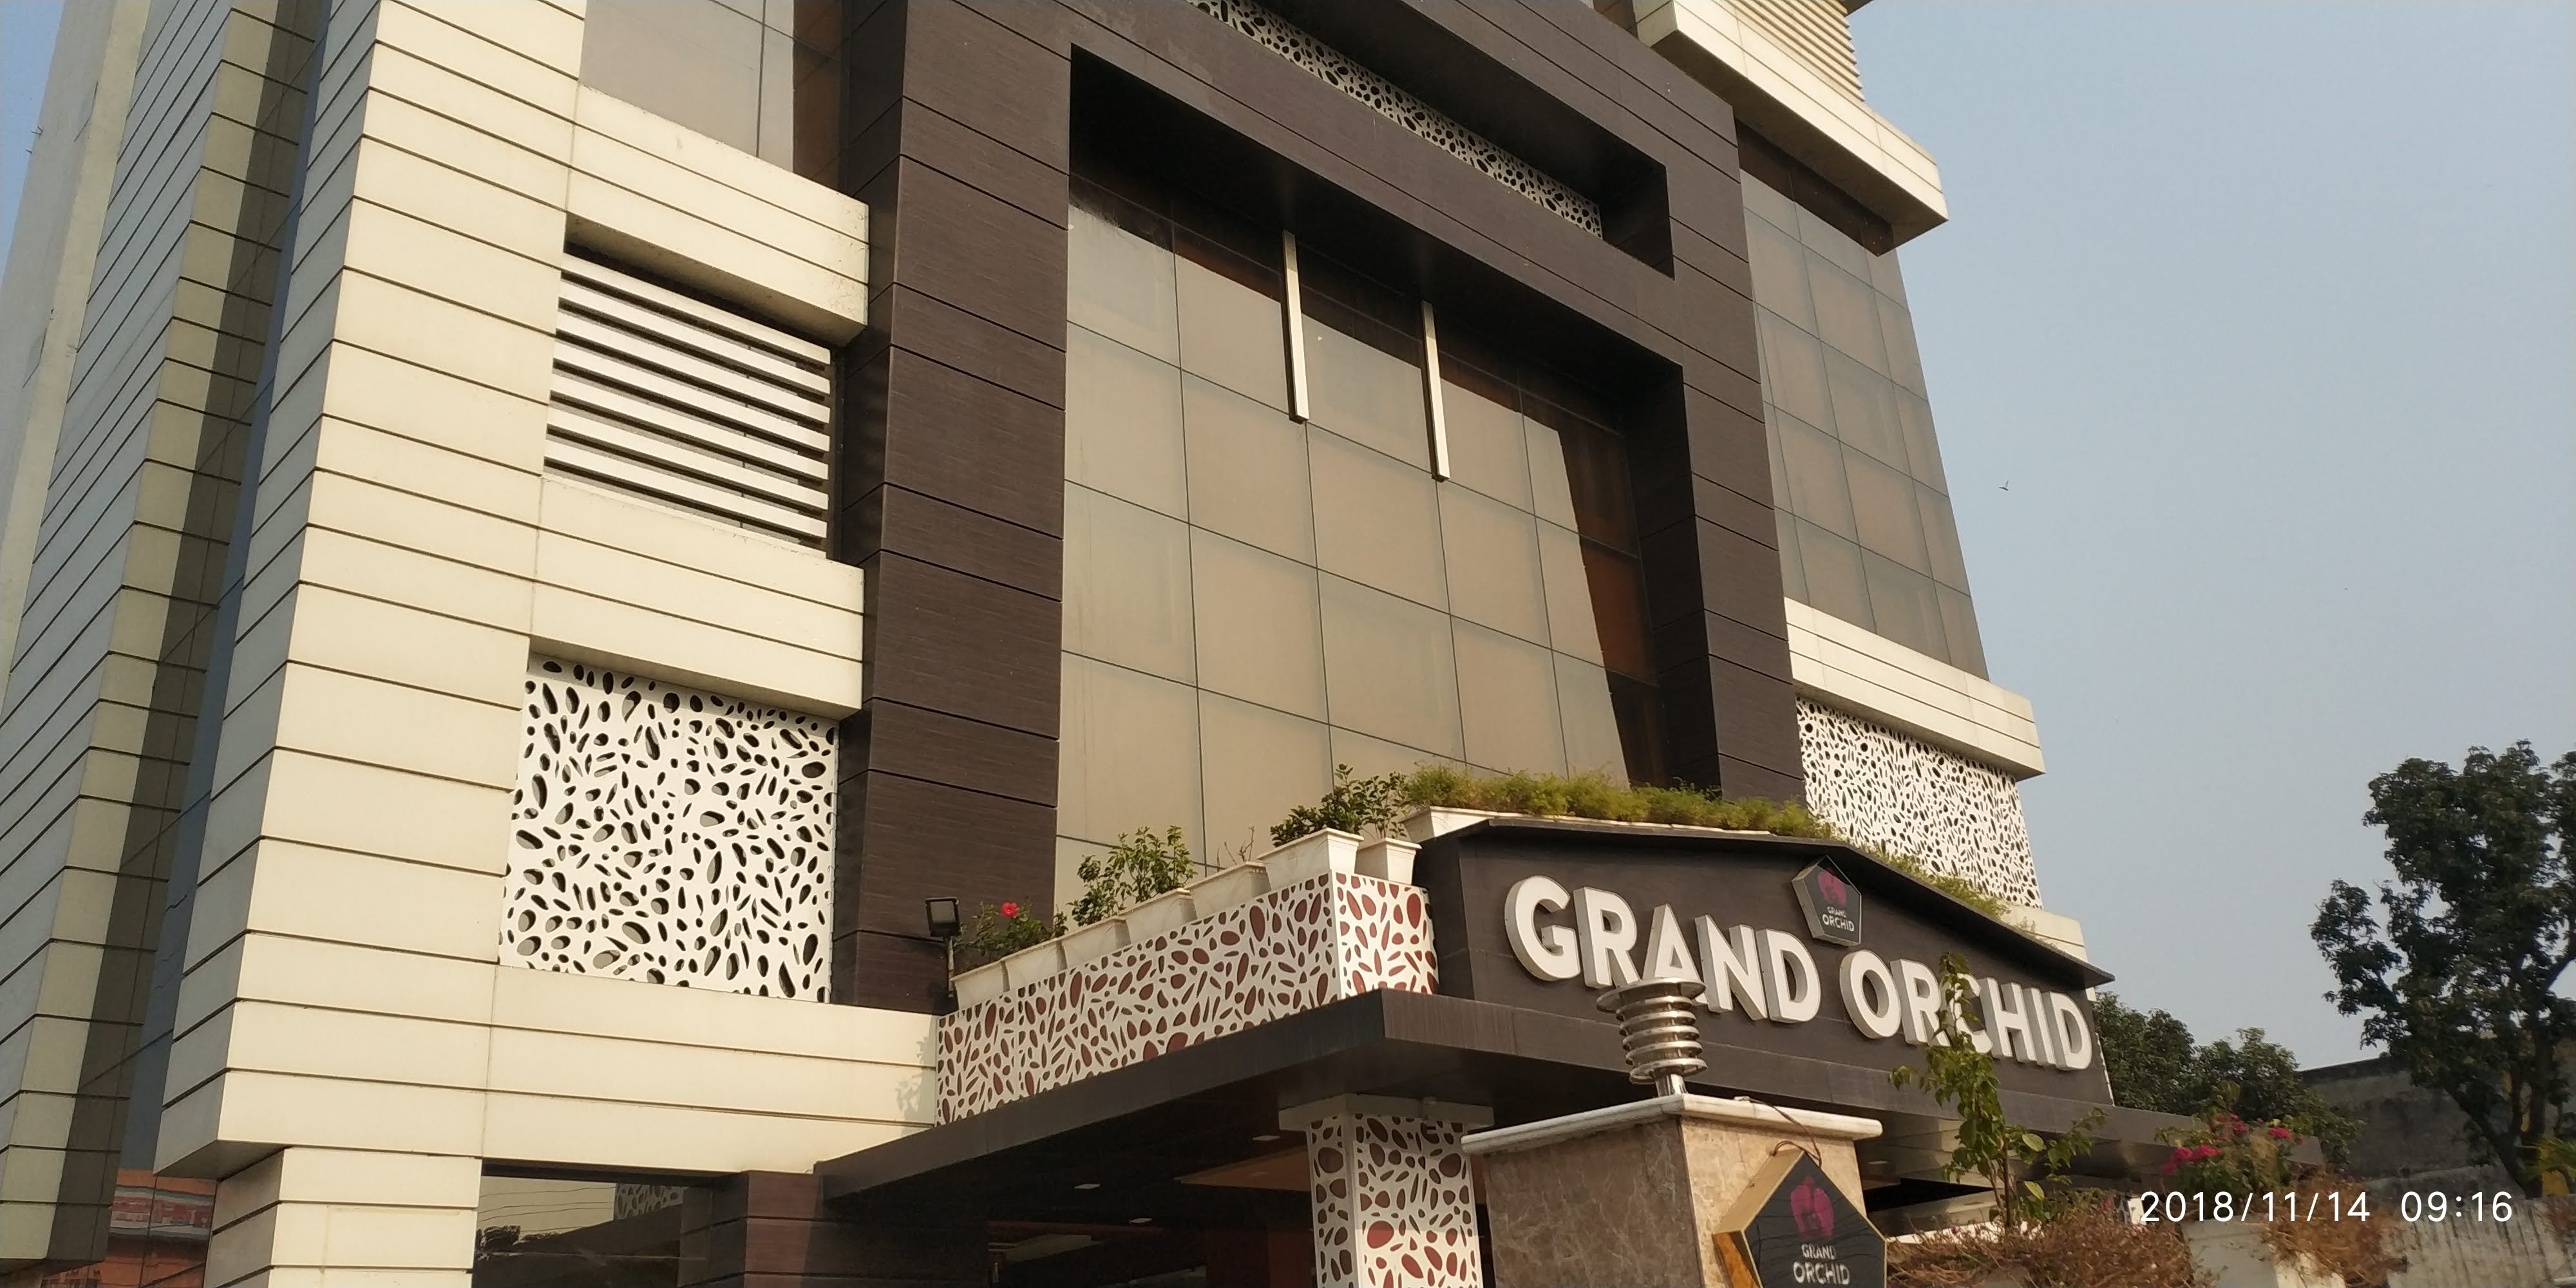 Hotel Grand Orchid - Pawan Dham Chowk - Haridwar Image